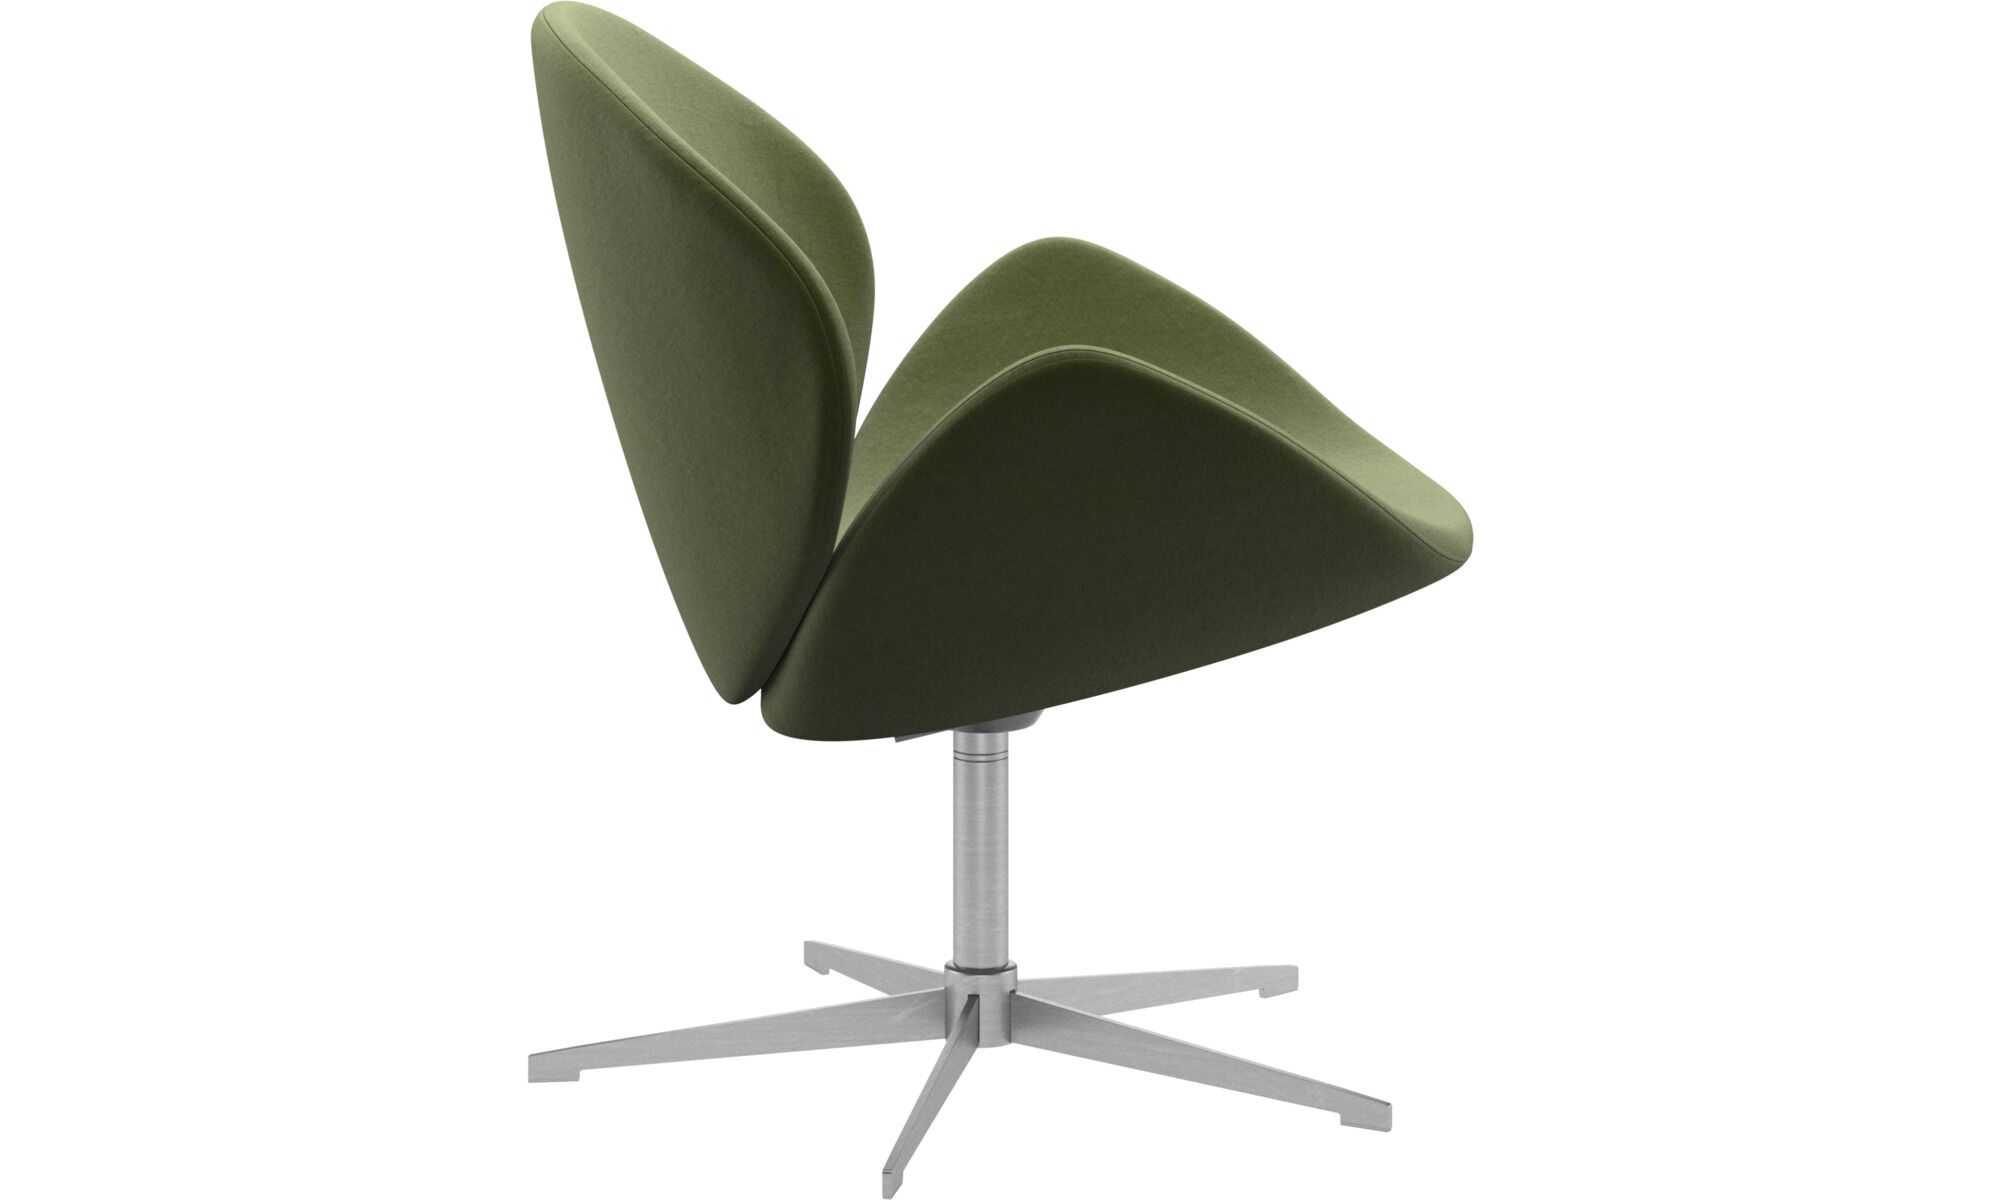 Ogi chair with swivel function